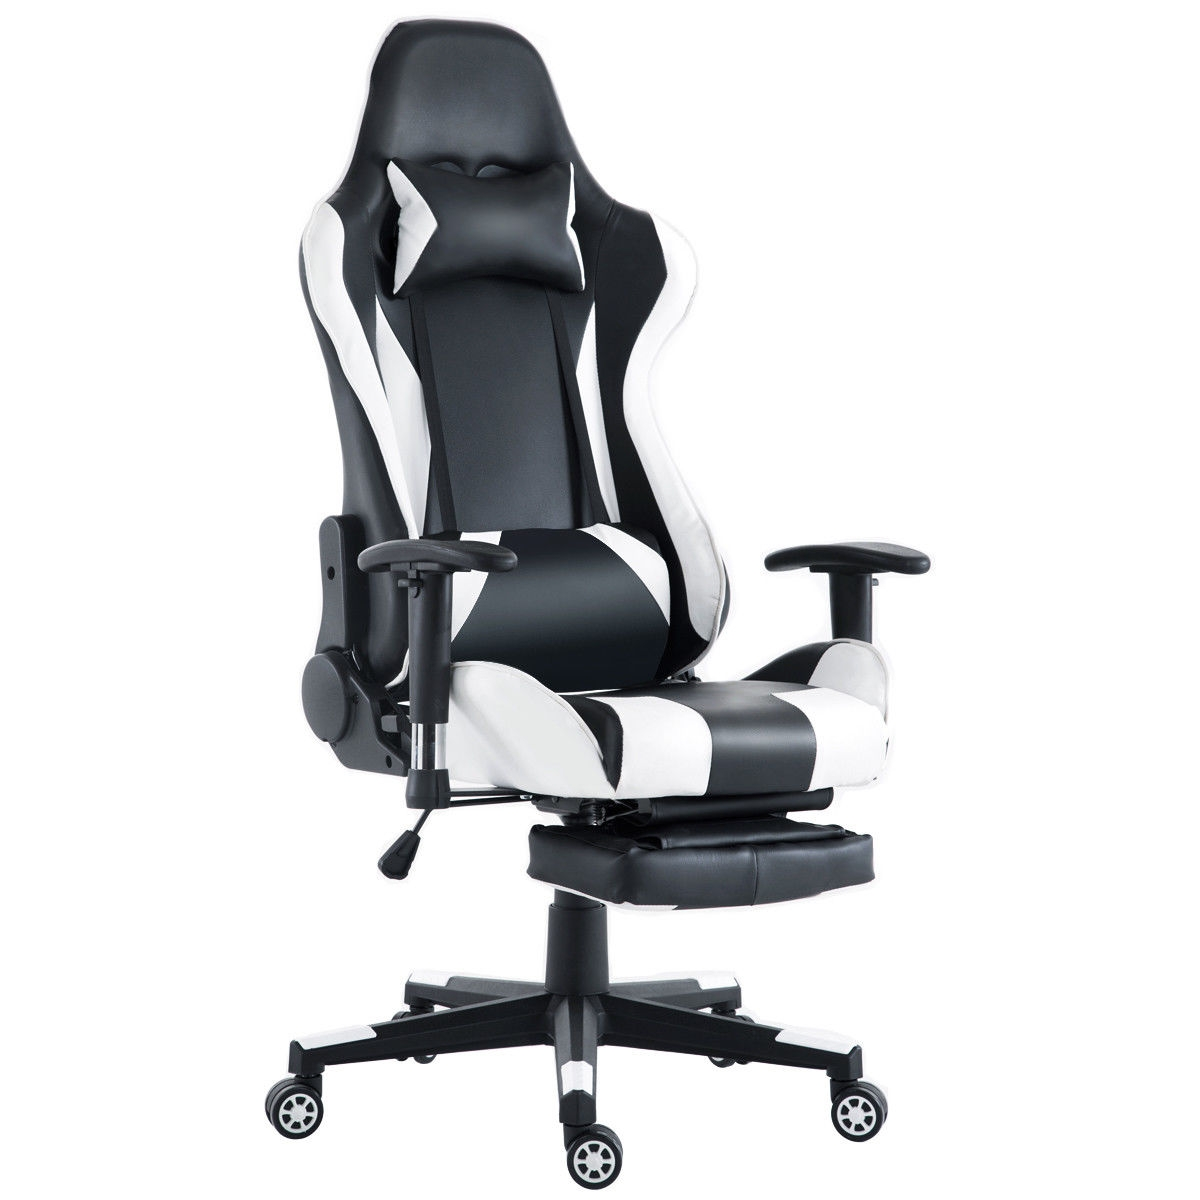 White High Back Racing Recliner Gaming Chair with Footrest